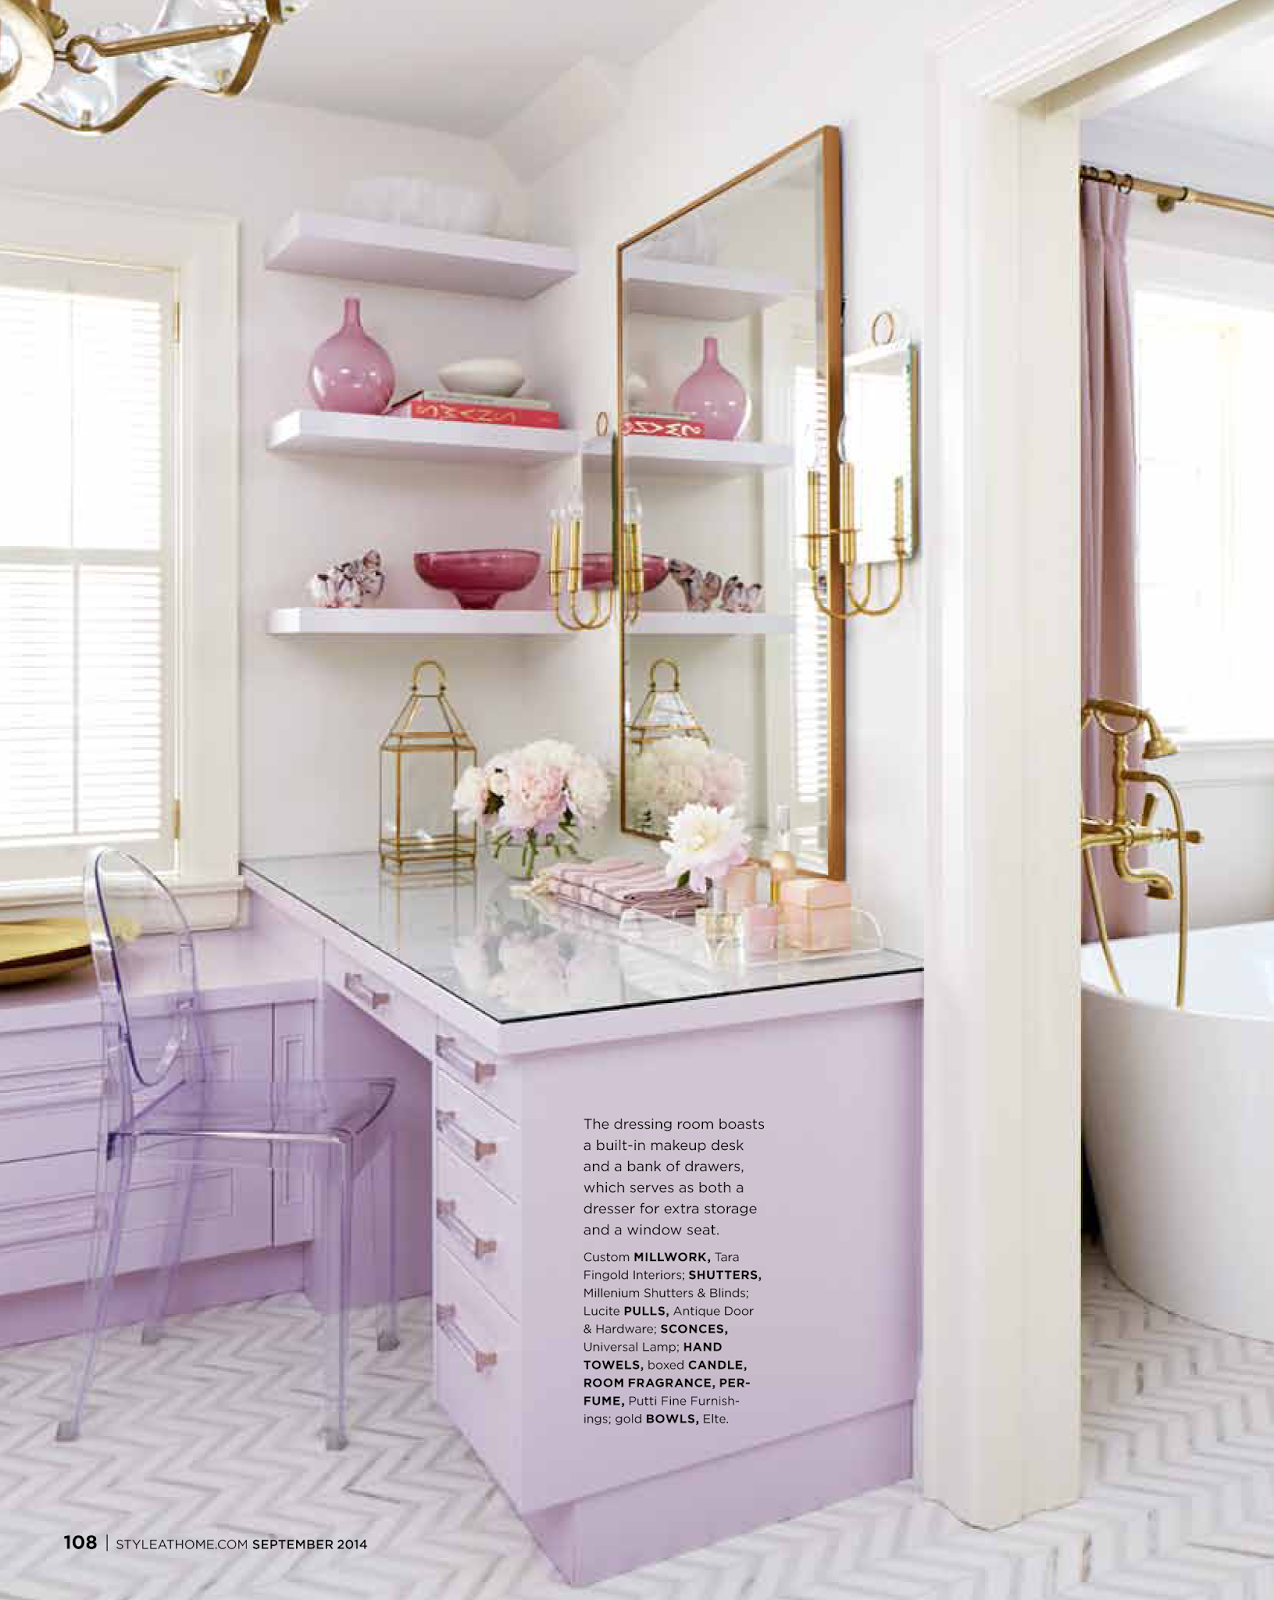 I Was Inspired To Create A Little Lilac And Gold Moodboard That Captures The Quiet Luxury Of This Look